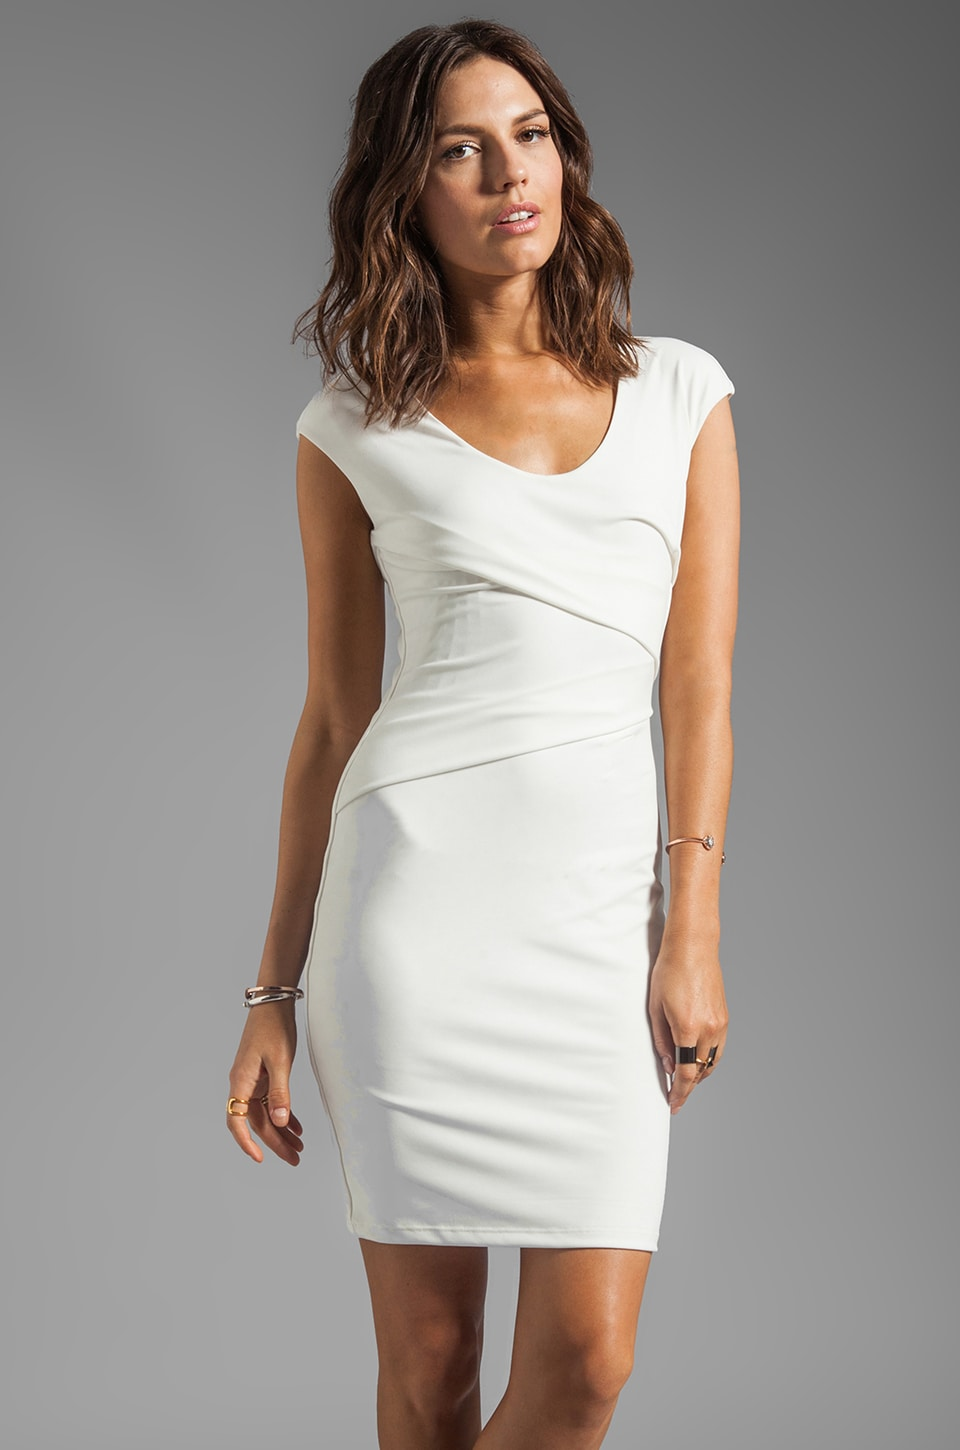 Graham & Spencer V-Neck Tank Dress in White